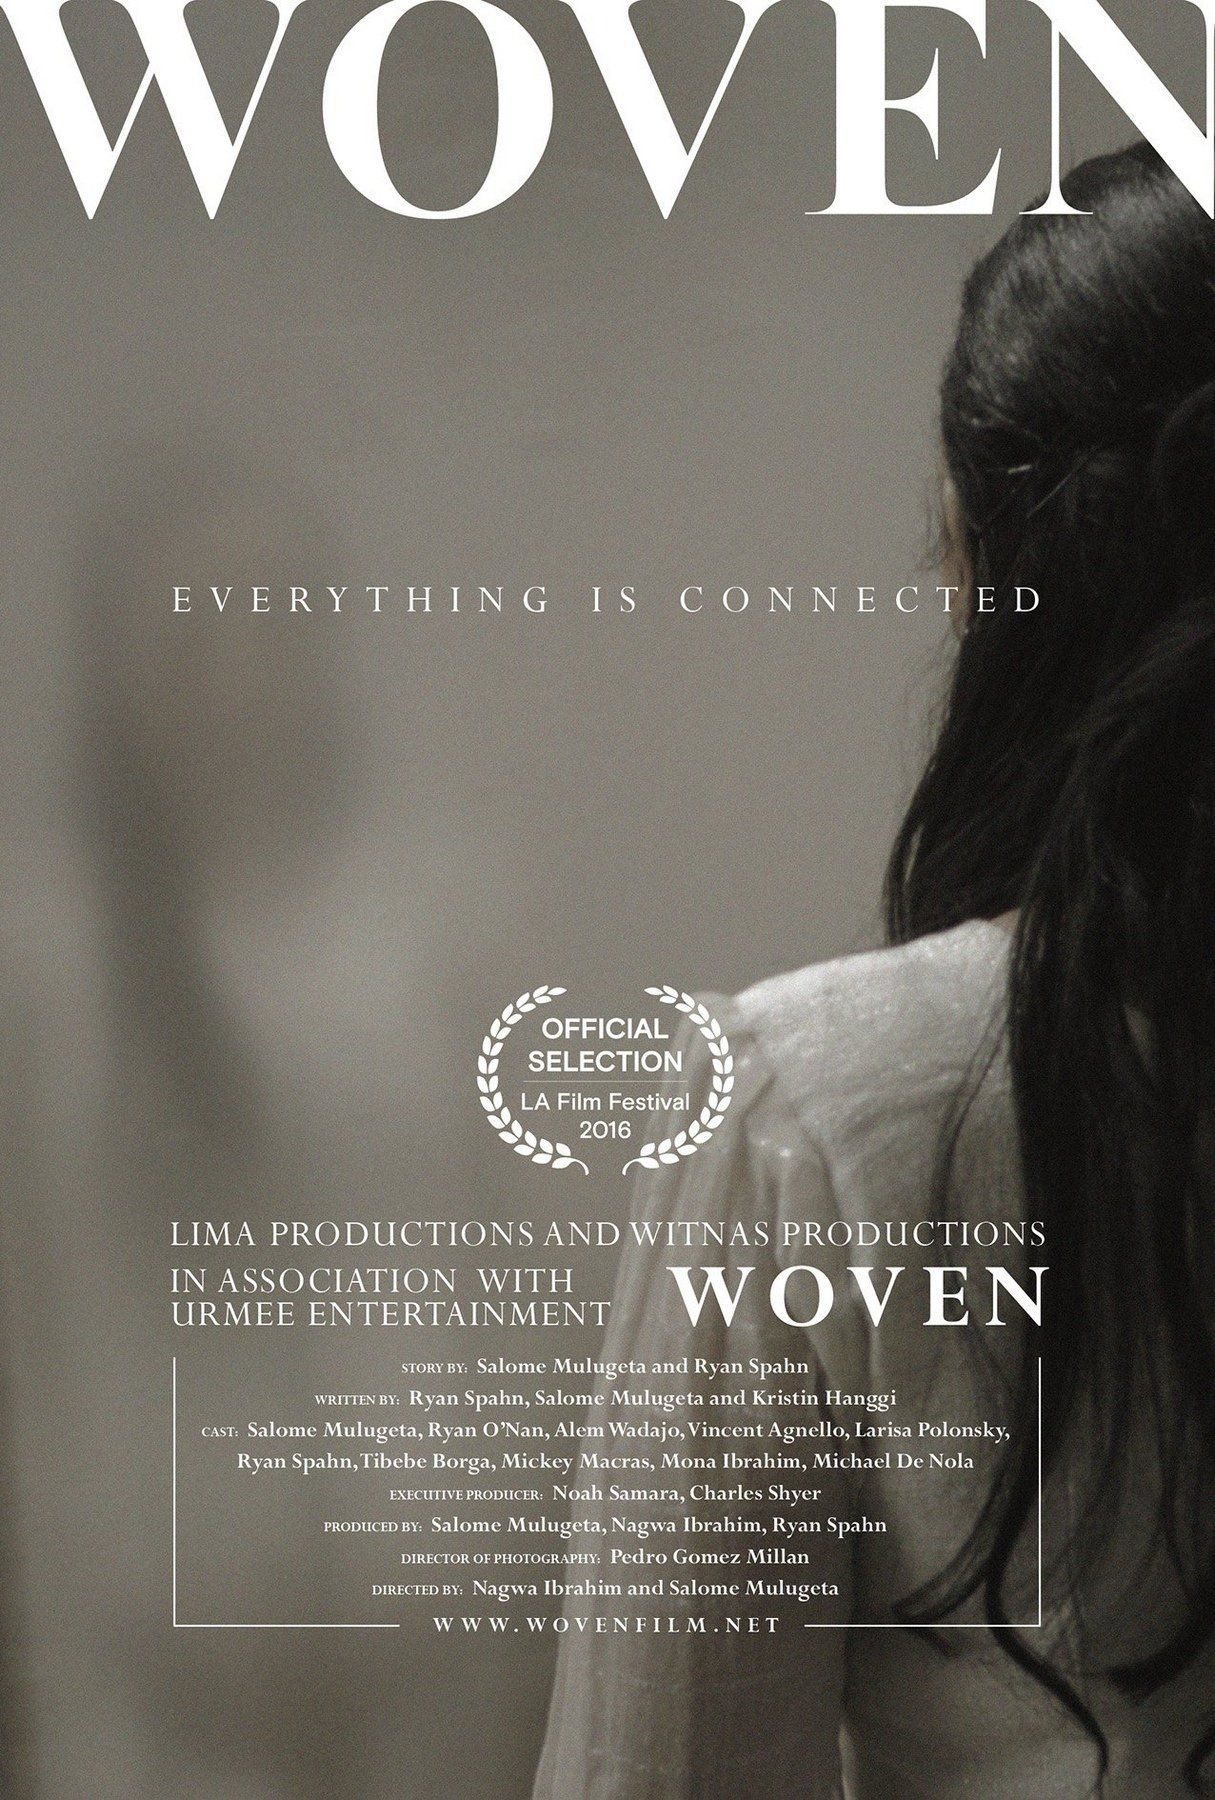 watch look again online for cinerill cinerill watch woven no registration no credit card only at cinerill largest online movie database updated everyday